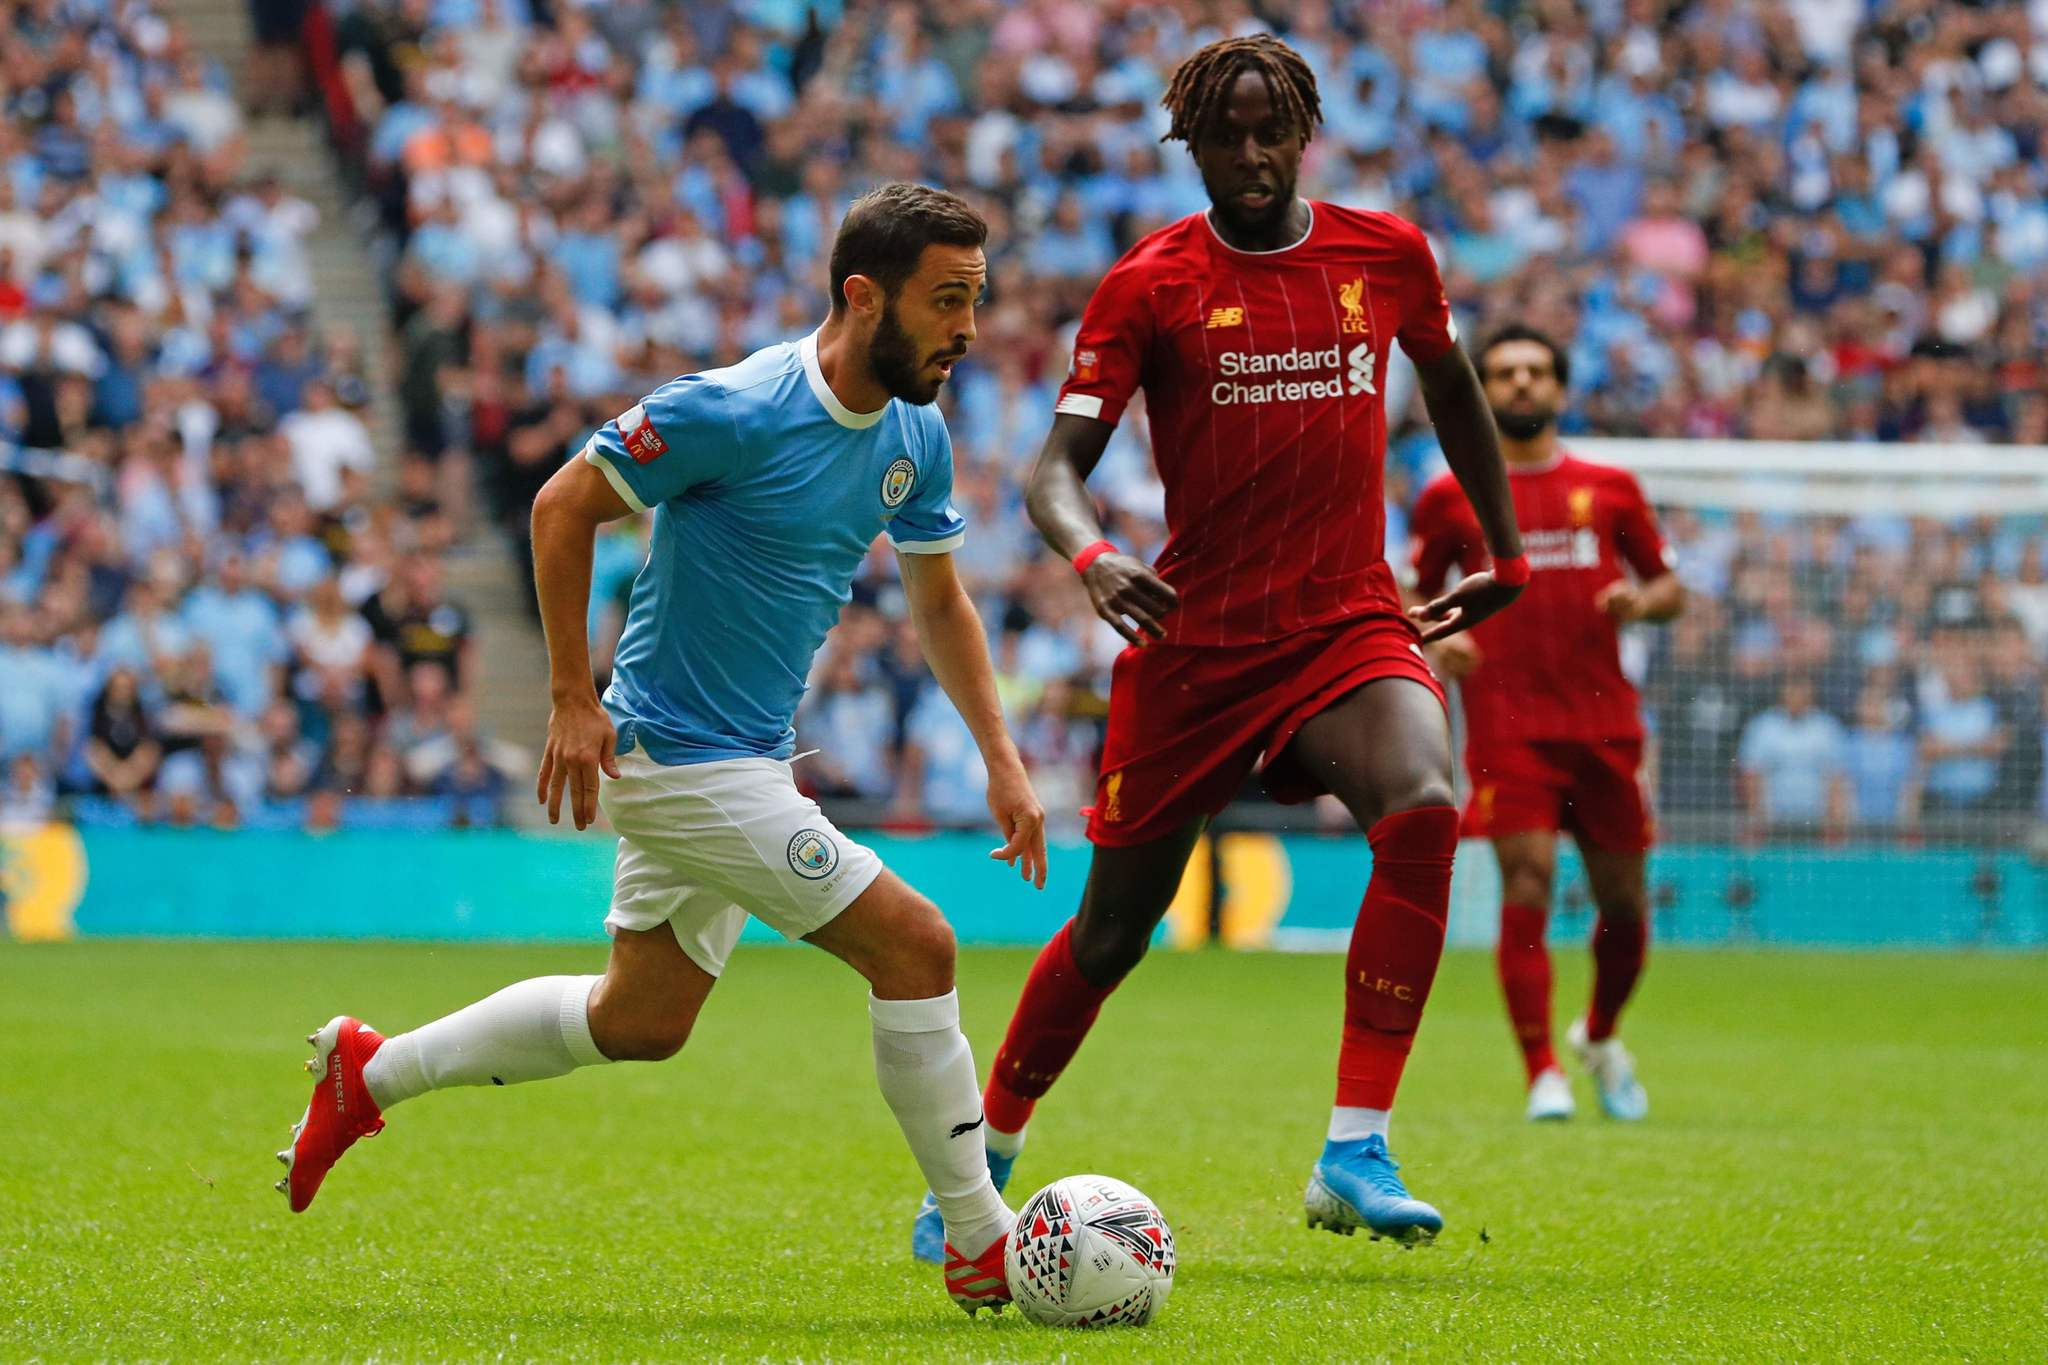 lt;HIT gt;Manchester lt;/HIT gt; lt;HIT gt;City lt;/HIT gt;s Portuguese midfielder Bernardo Silva (L) takes on lt;HIT gt;Liverpool lt;/HIT gt;s Belgian striker Divock Origi (R) during the English FA Community Shield football match between lt;HIT gt;Manchester lt;/HIT gt; lt;HIT gt;City lt;/HIT gt; and lt;HIT gt;Liverpool lt;/HIT gt; at Wembley Stadium in north London on August 4, 2019. (Photo by Adrian DENNIS / AFP) / NOT FOR MARKETING OR ADVERTISING USE / RESTRICTED TO EDITORIAL USE